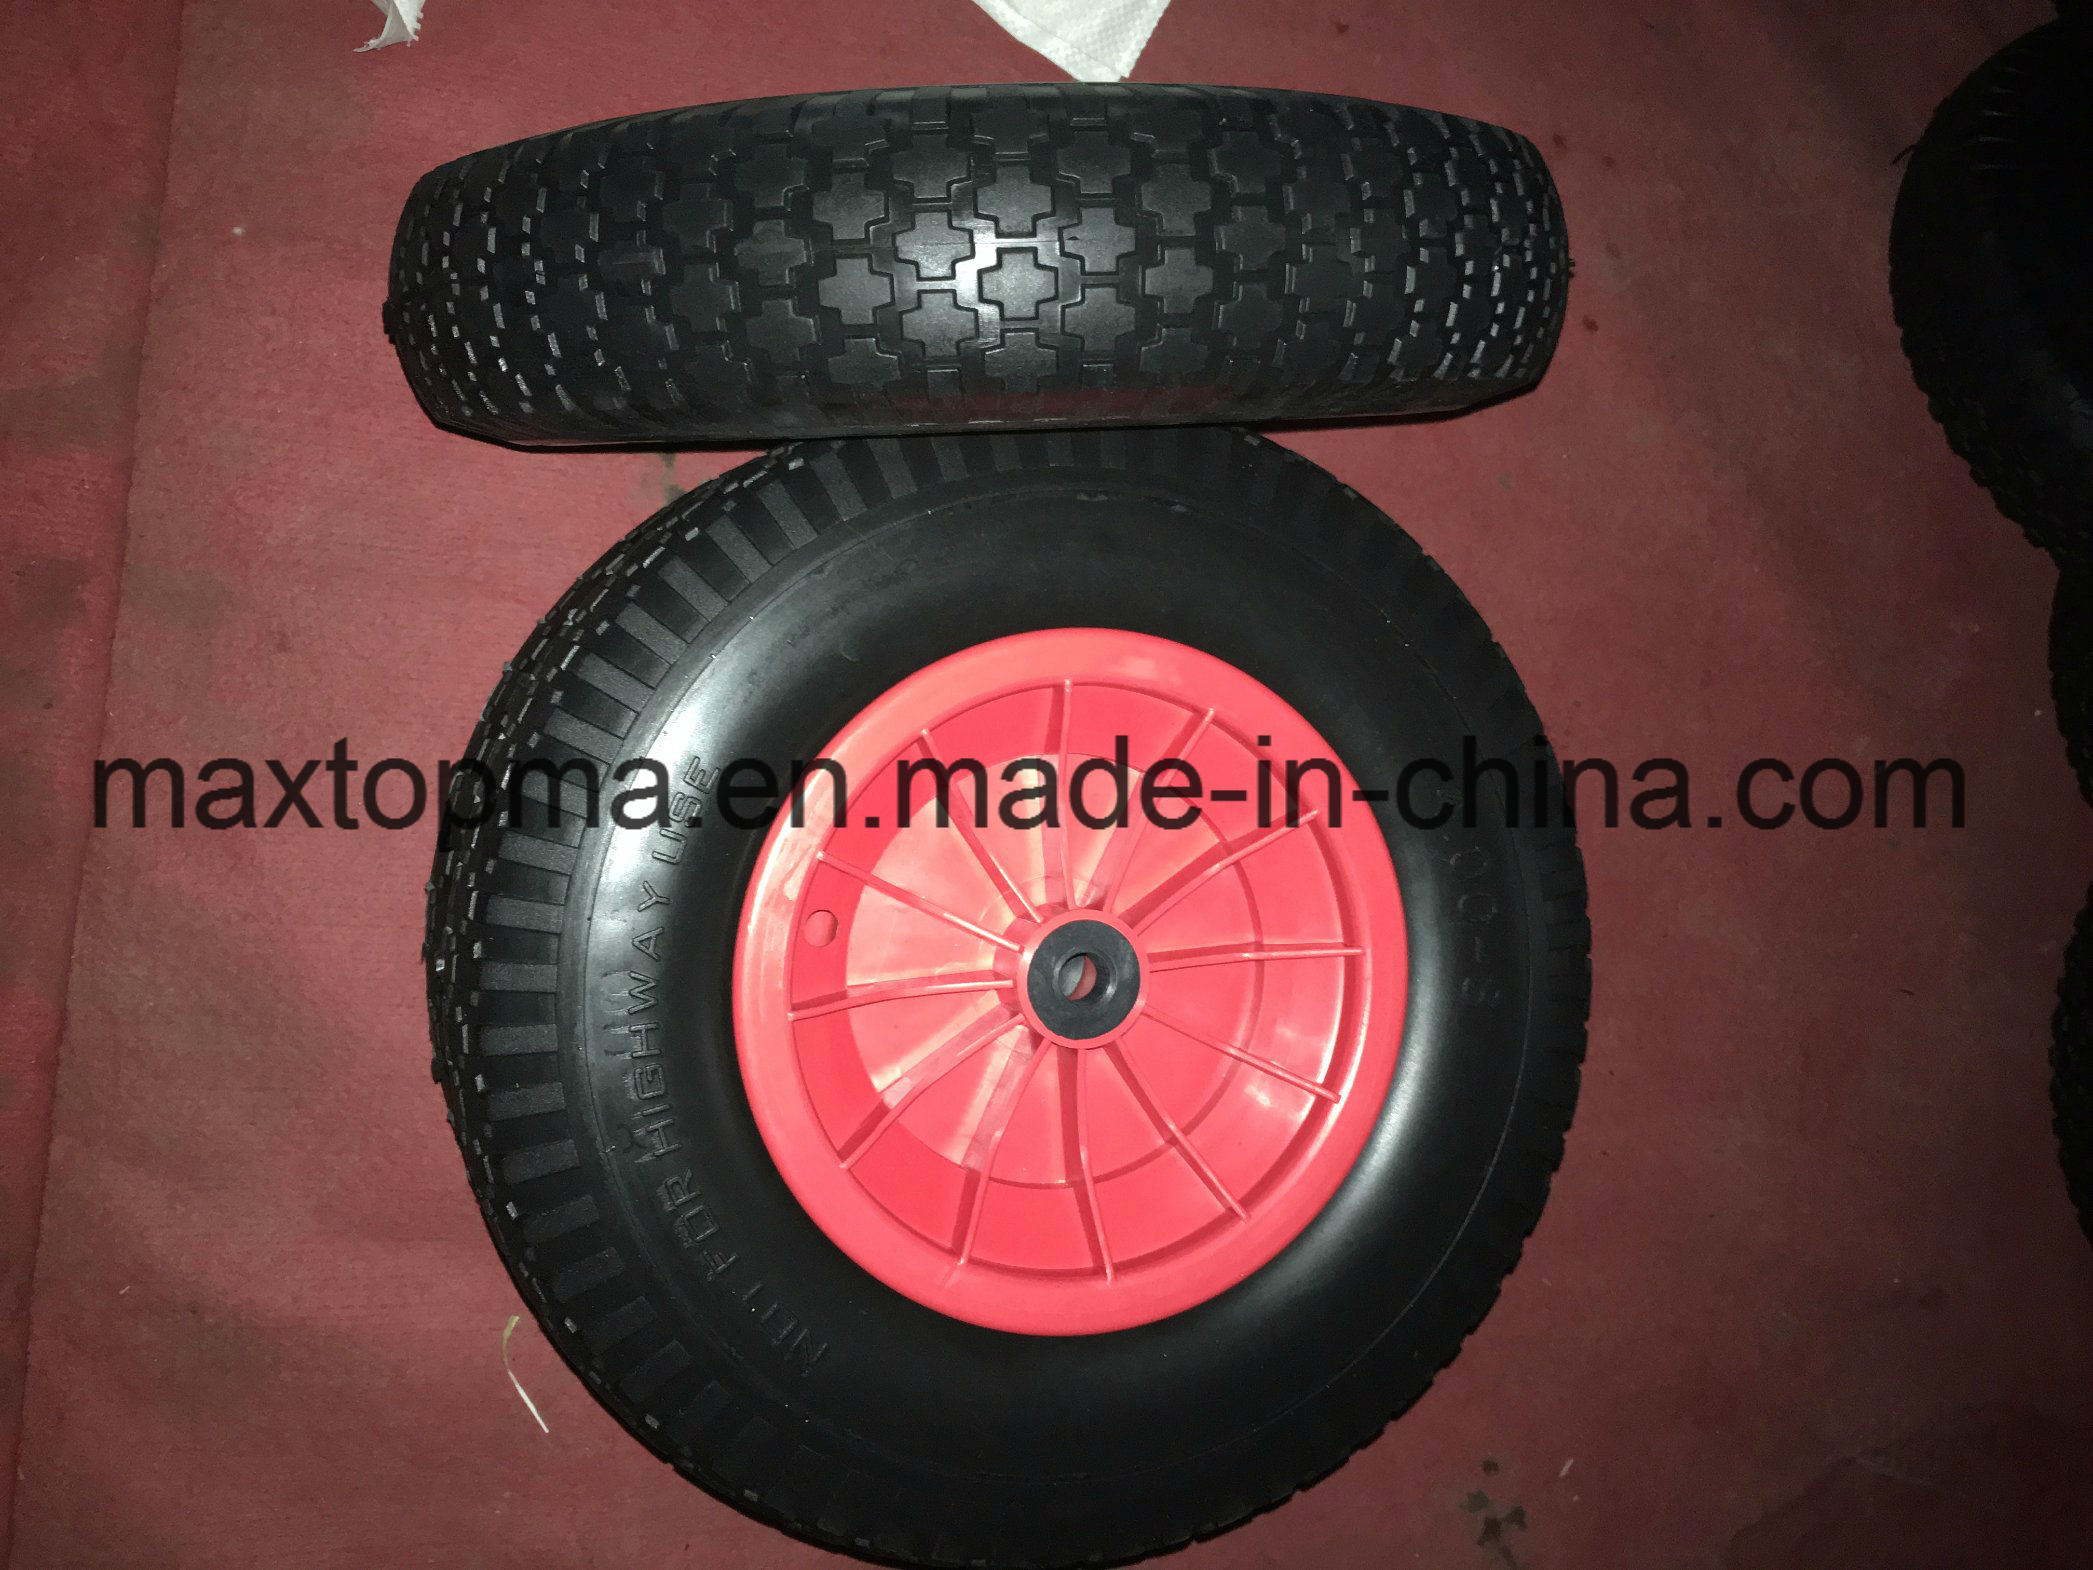 16X1.75 Baby Stoller PU Foam Wheel pictures & photos